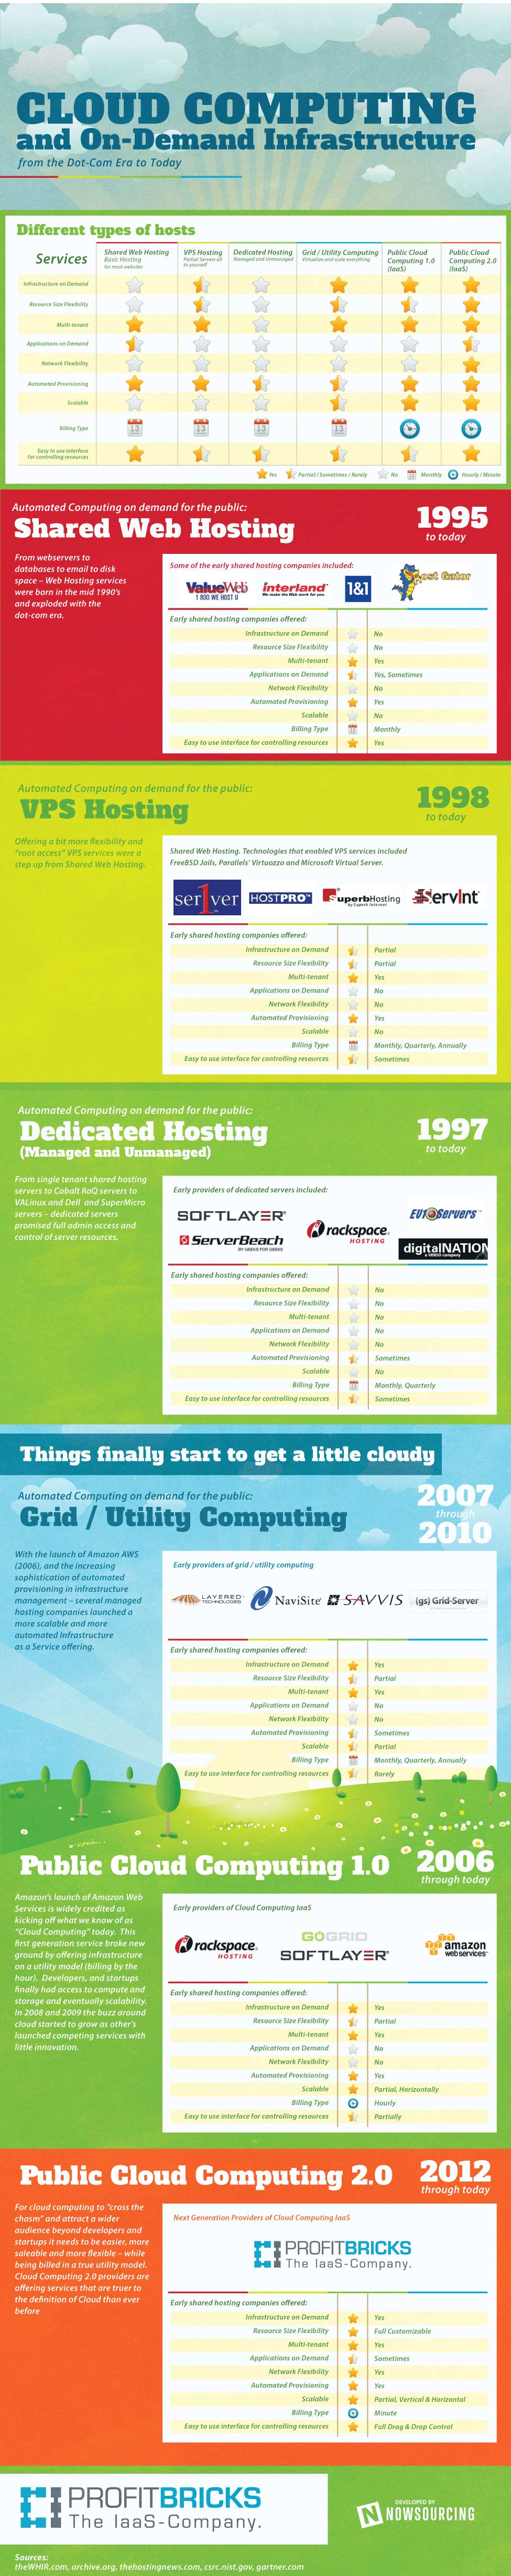 CLOUD INFOGRAPHIC: History and Evolution of Cloud Computing